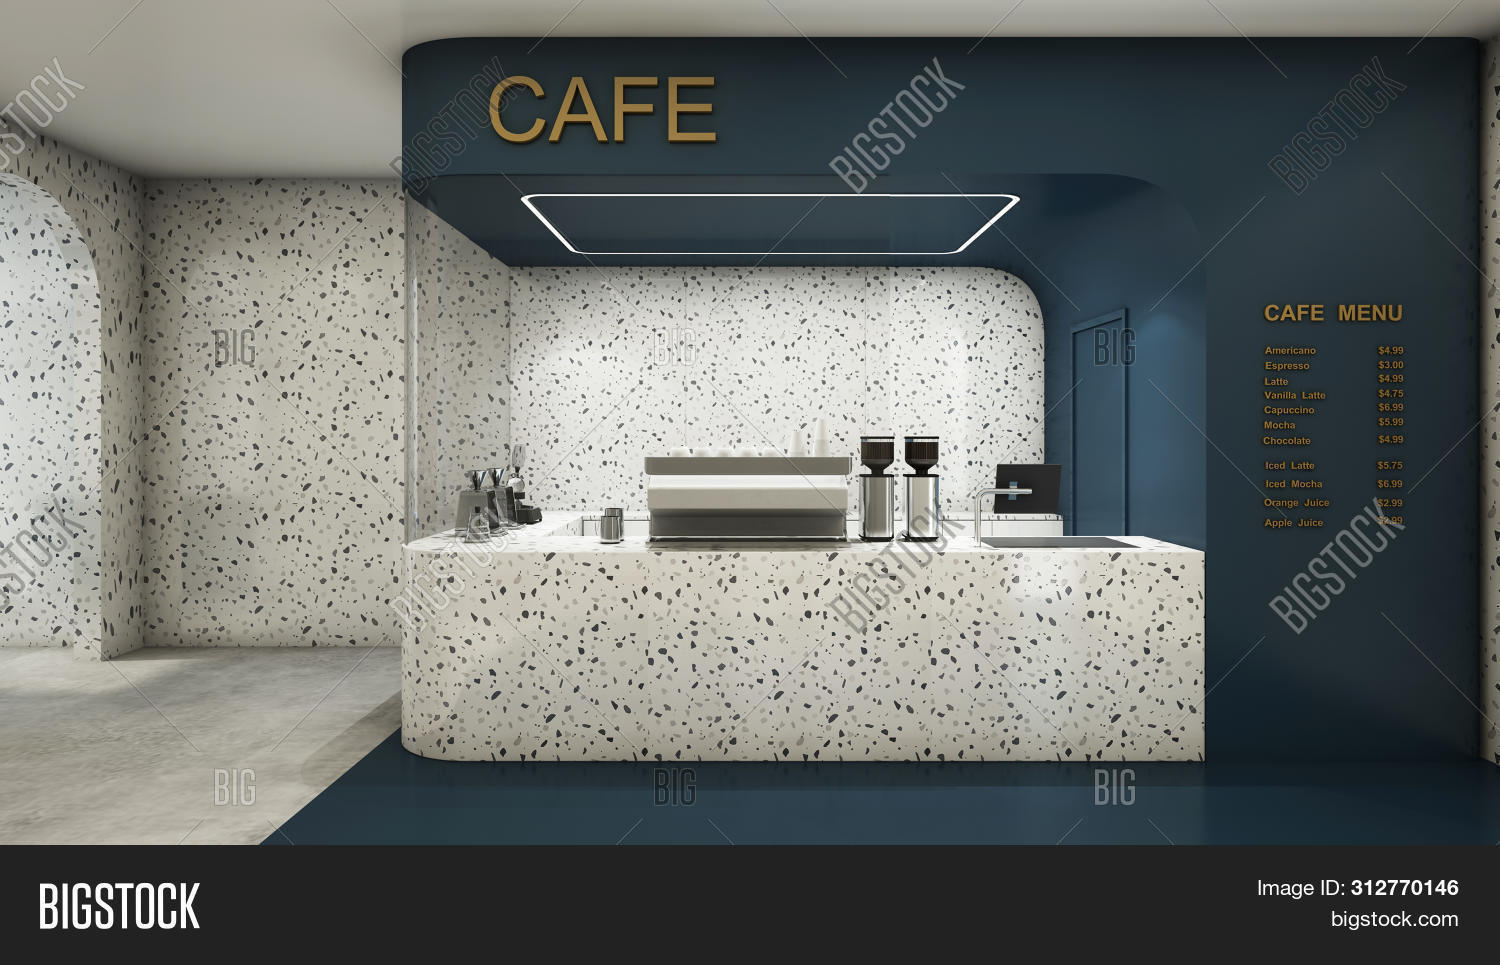 Front View Cafe Shop Image Photo Free Trial Bigstock